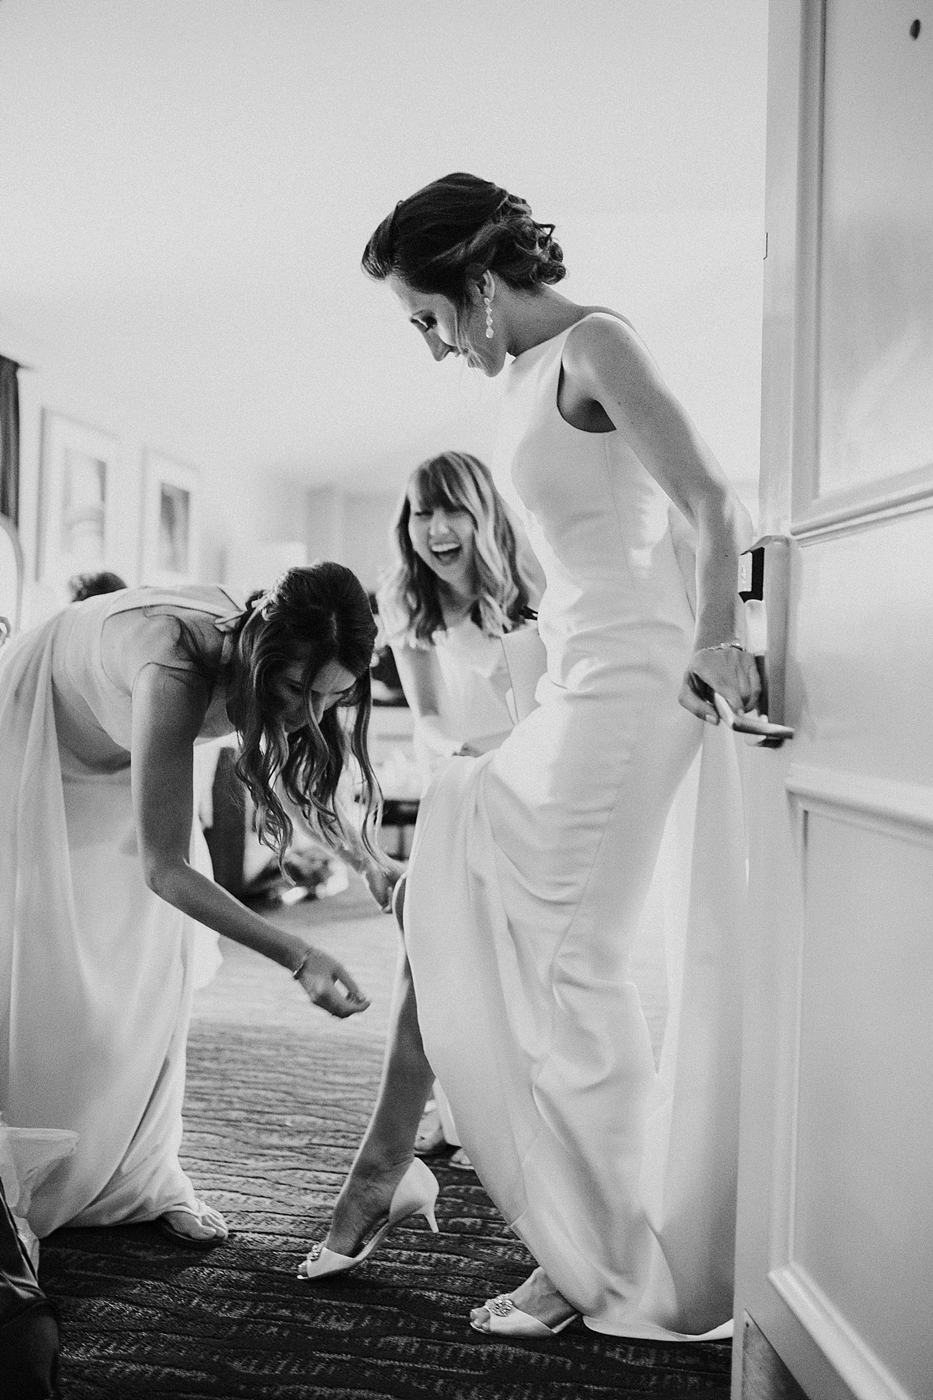 mt-washington-mill-baltimore-wedding-kirsten-marie-photography_1402